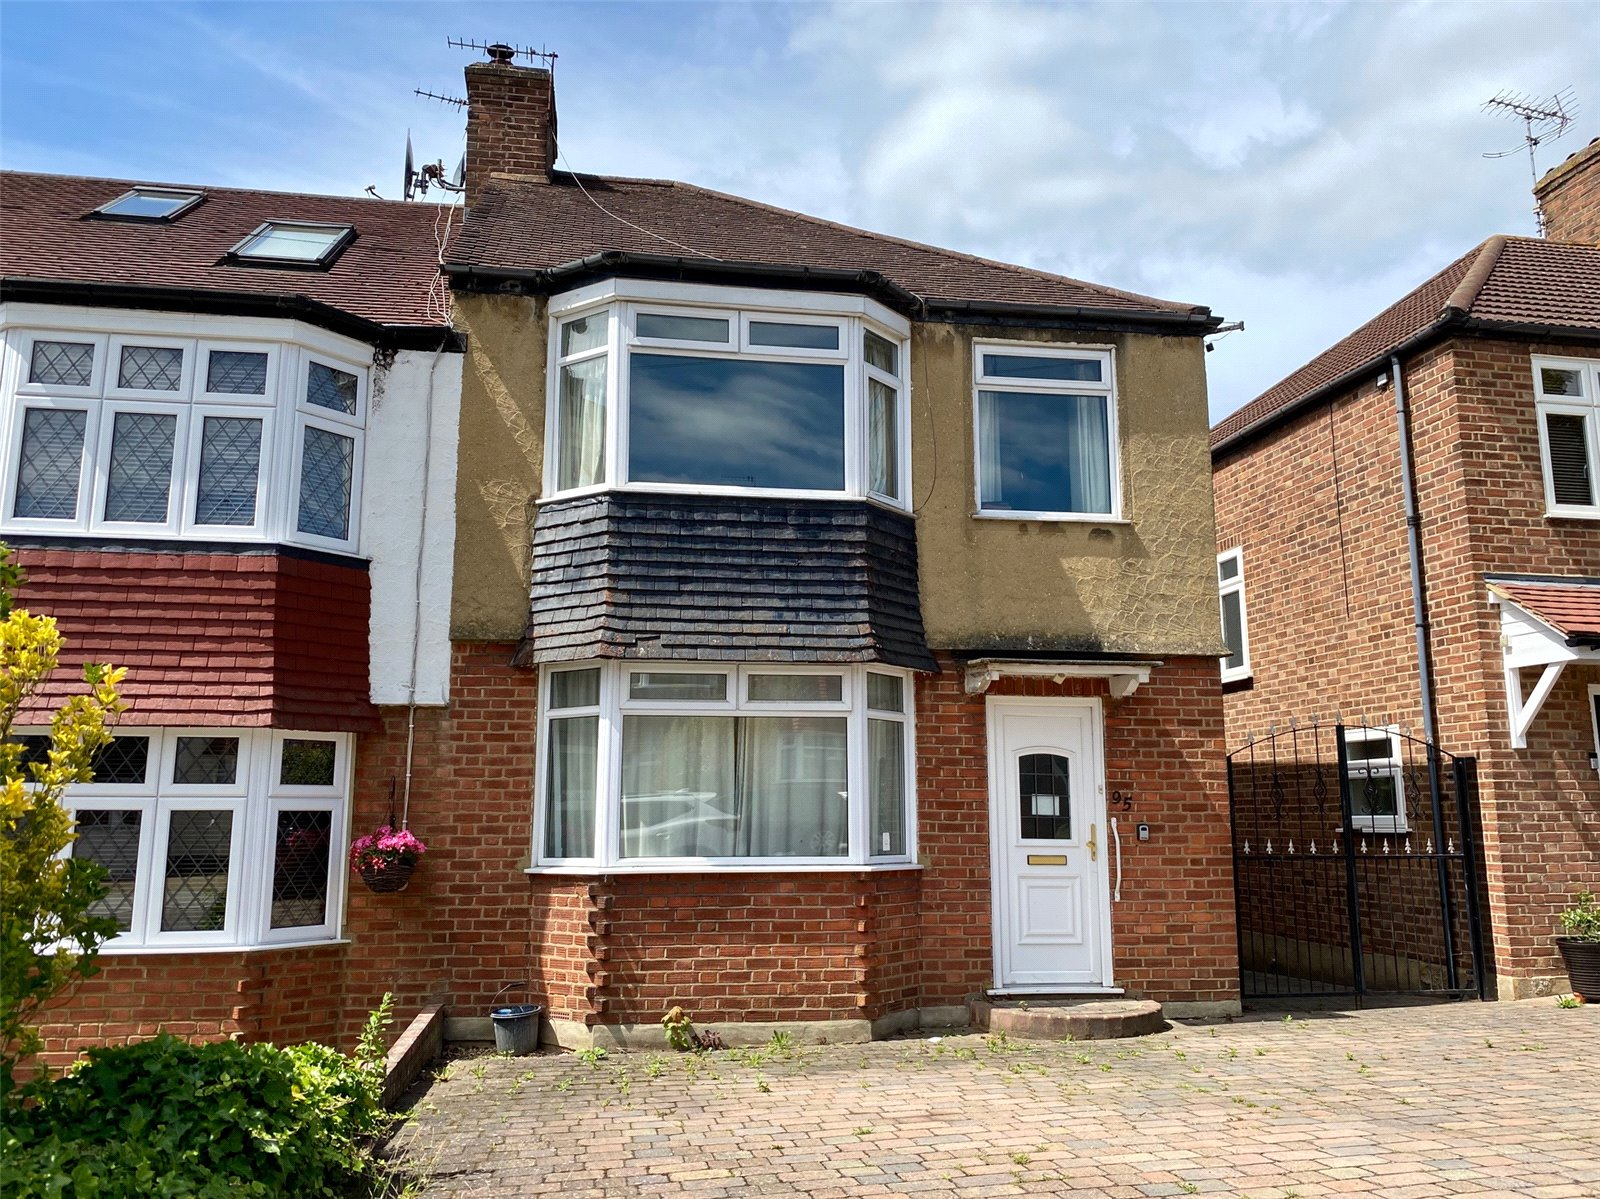 3 bed house for sale in Barnet, EN5 2BP, EN5